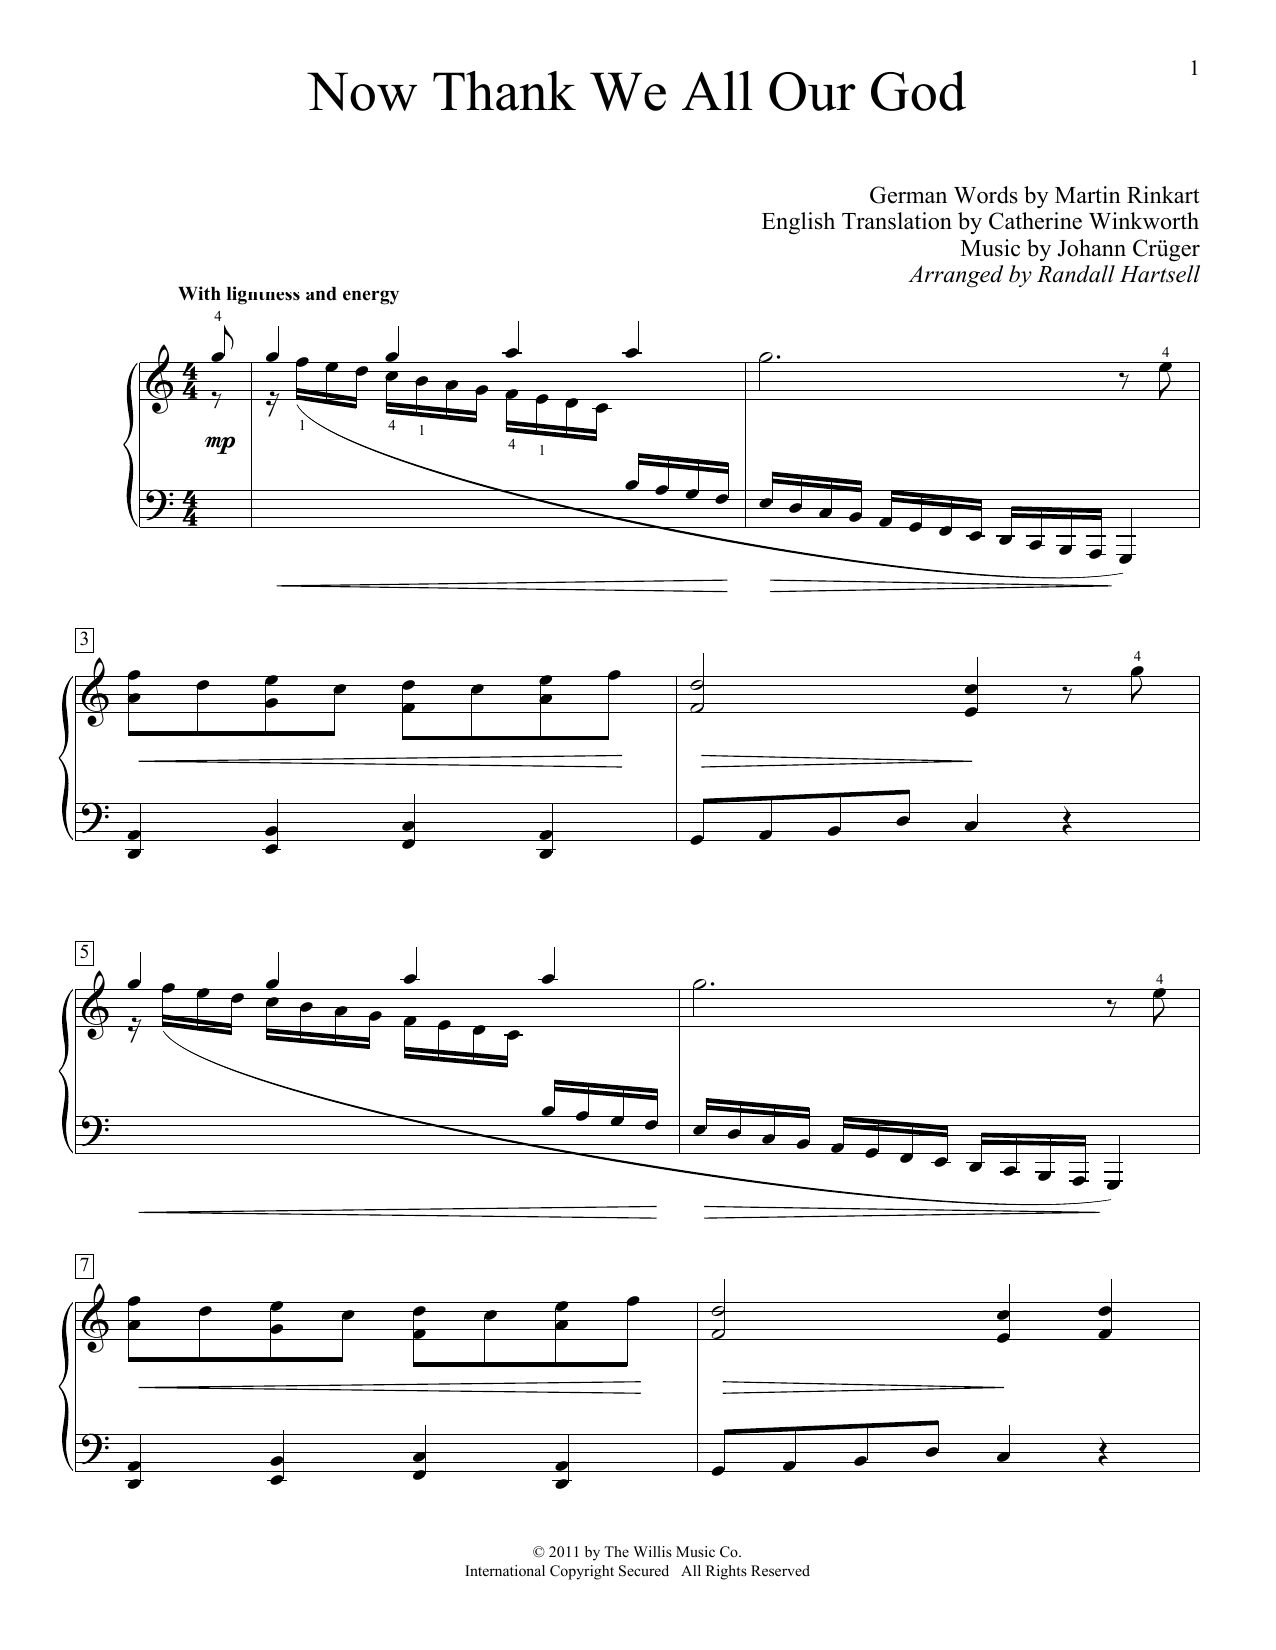 Download Martin Rinkart 'Now Thank We All Our God' Digital Sheet Music Notes & Chords and start playing in minutes